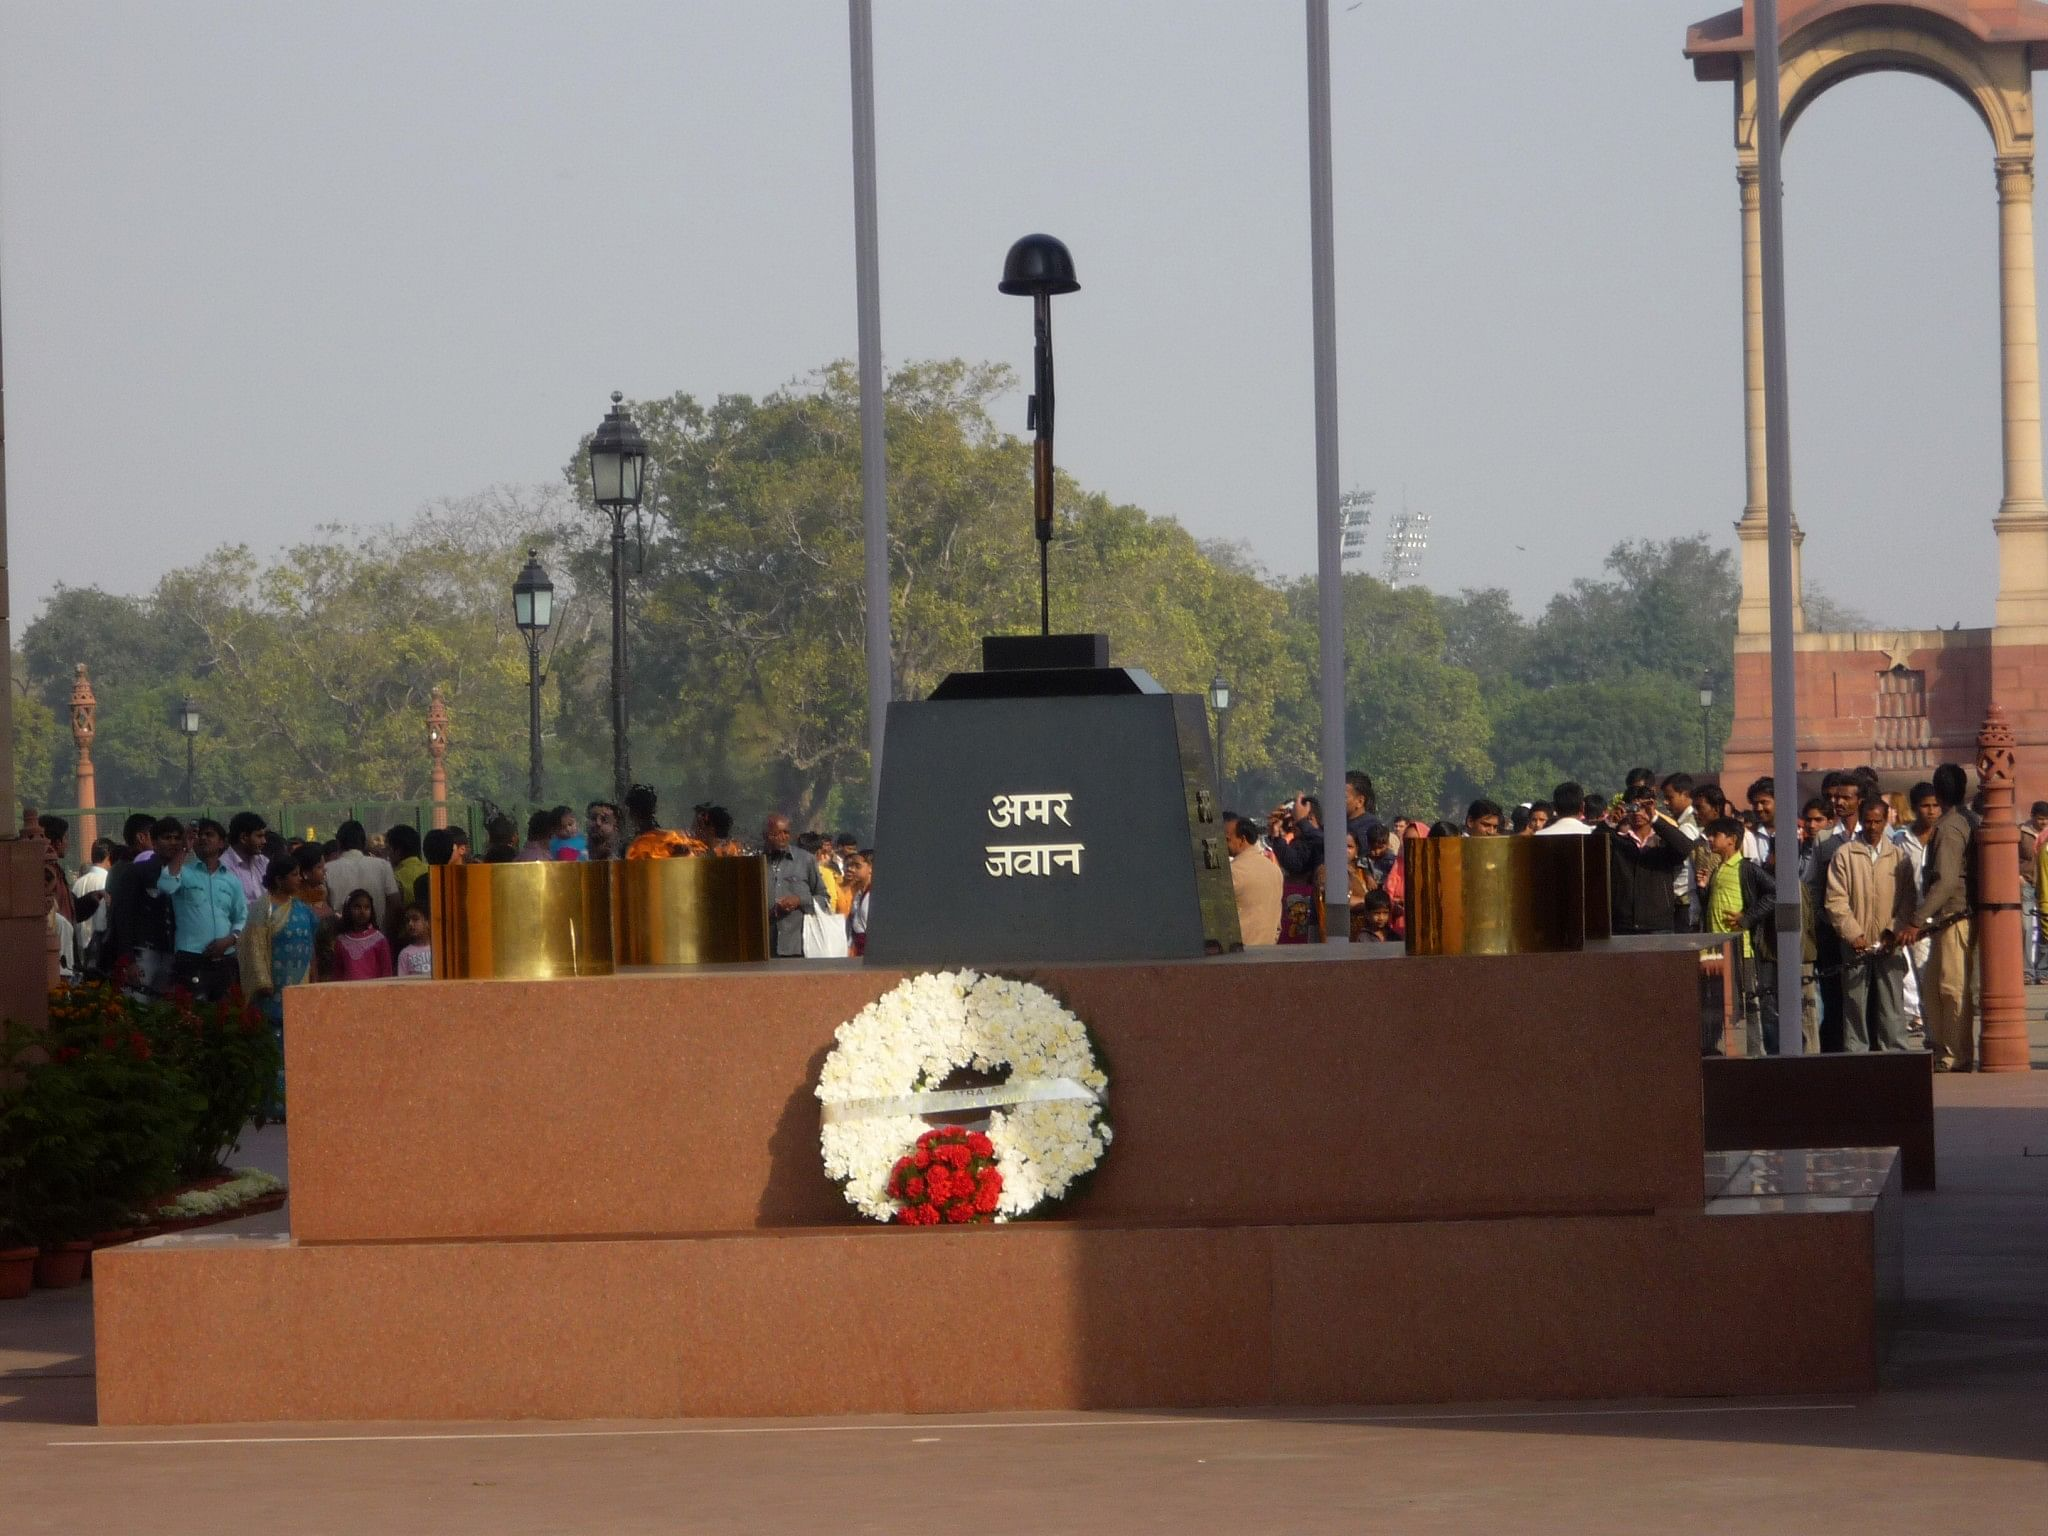 Heres what you need to know about the amar jawan jyoti 4360605753c54c728146o altavistaventures Choice Image